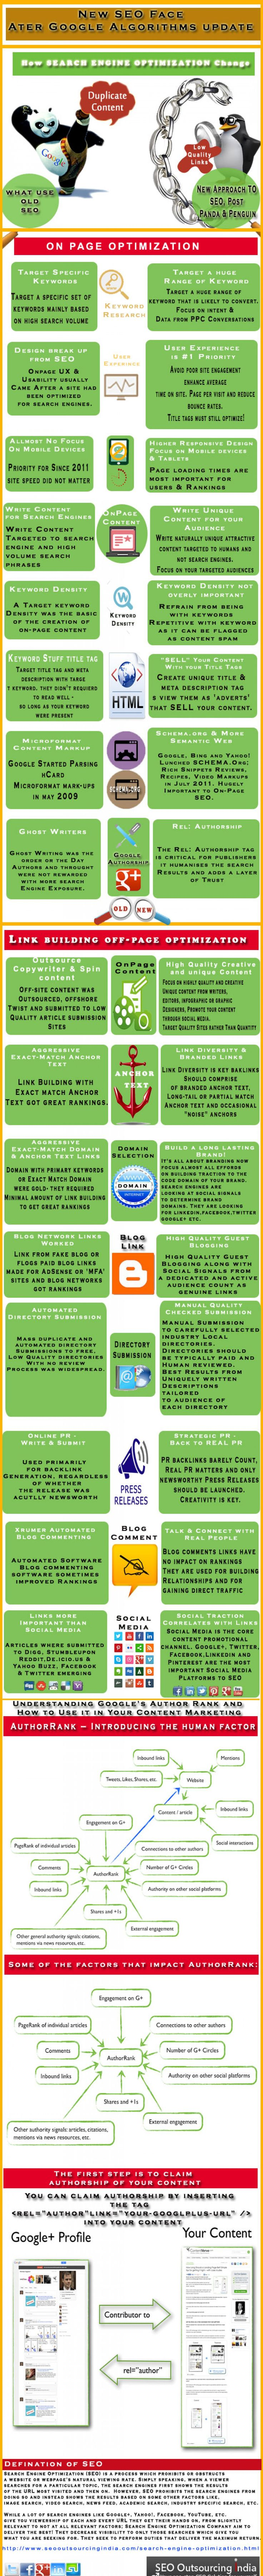 Search Engine Optimization, Local SEO, Professional SEO Infographic | By seo.riddsnetwork.in